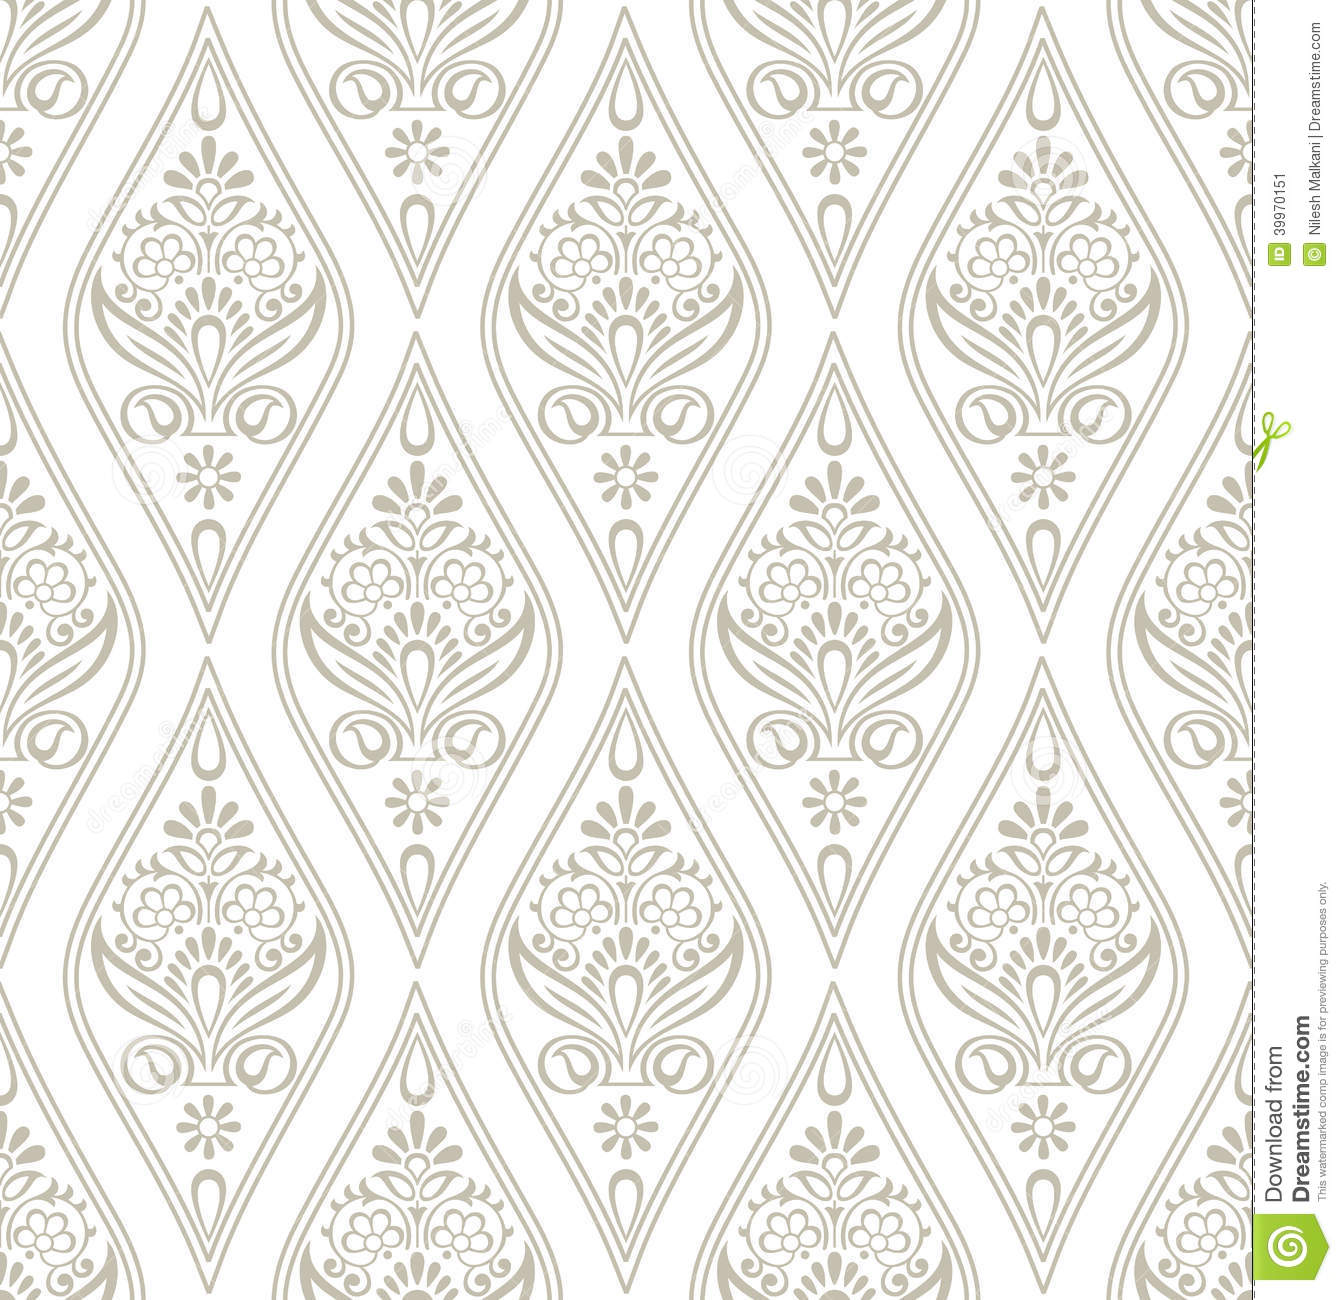 Damask Royal Wallpaper Stock Vector Illustration Of Tile